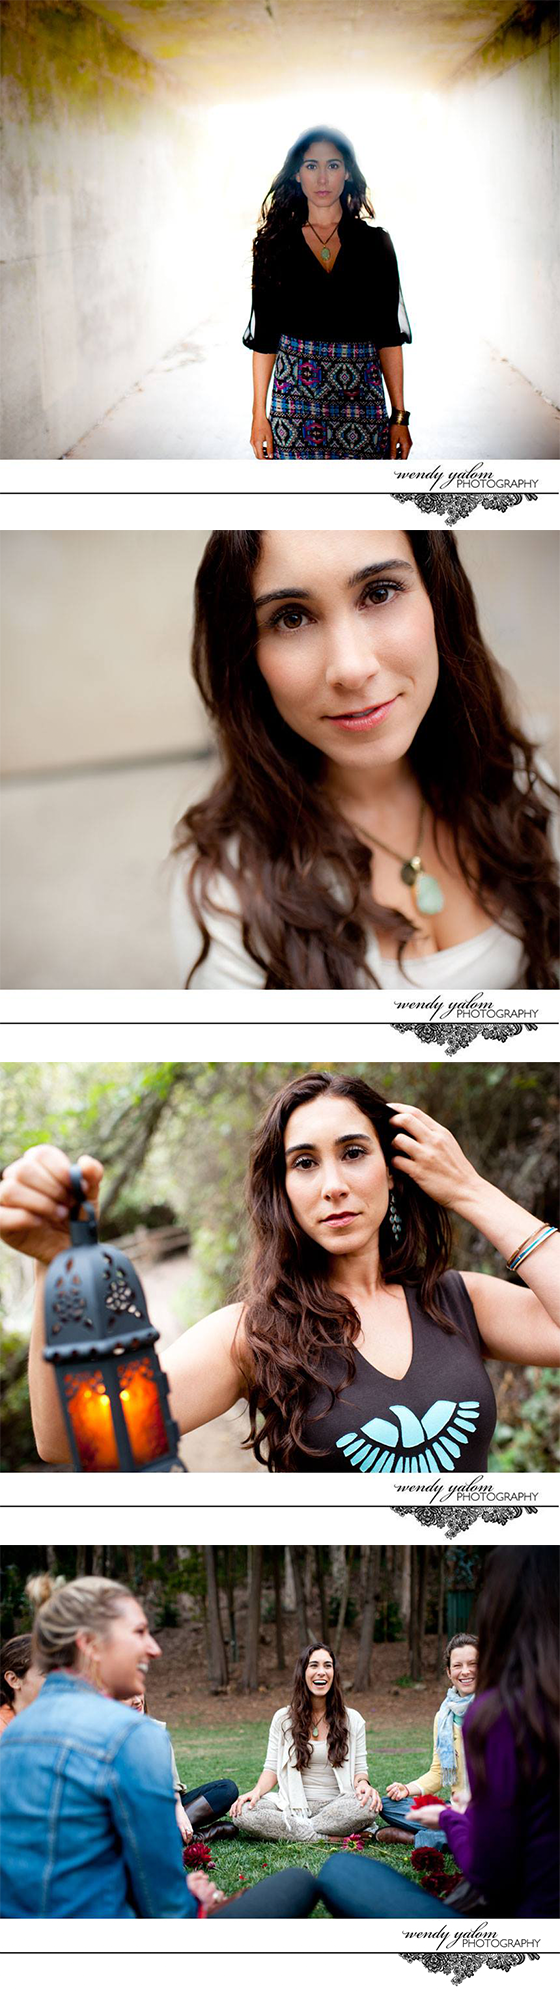 Personal Branding Photoshoot with Julie Santiago by Wendy K Yalom